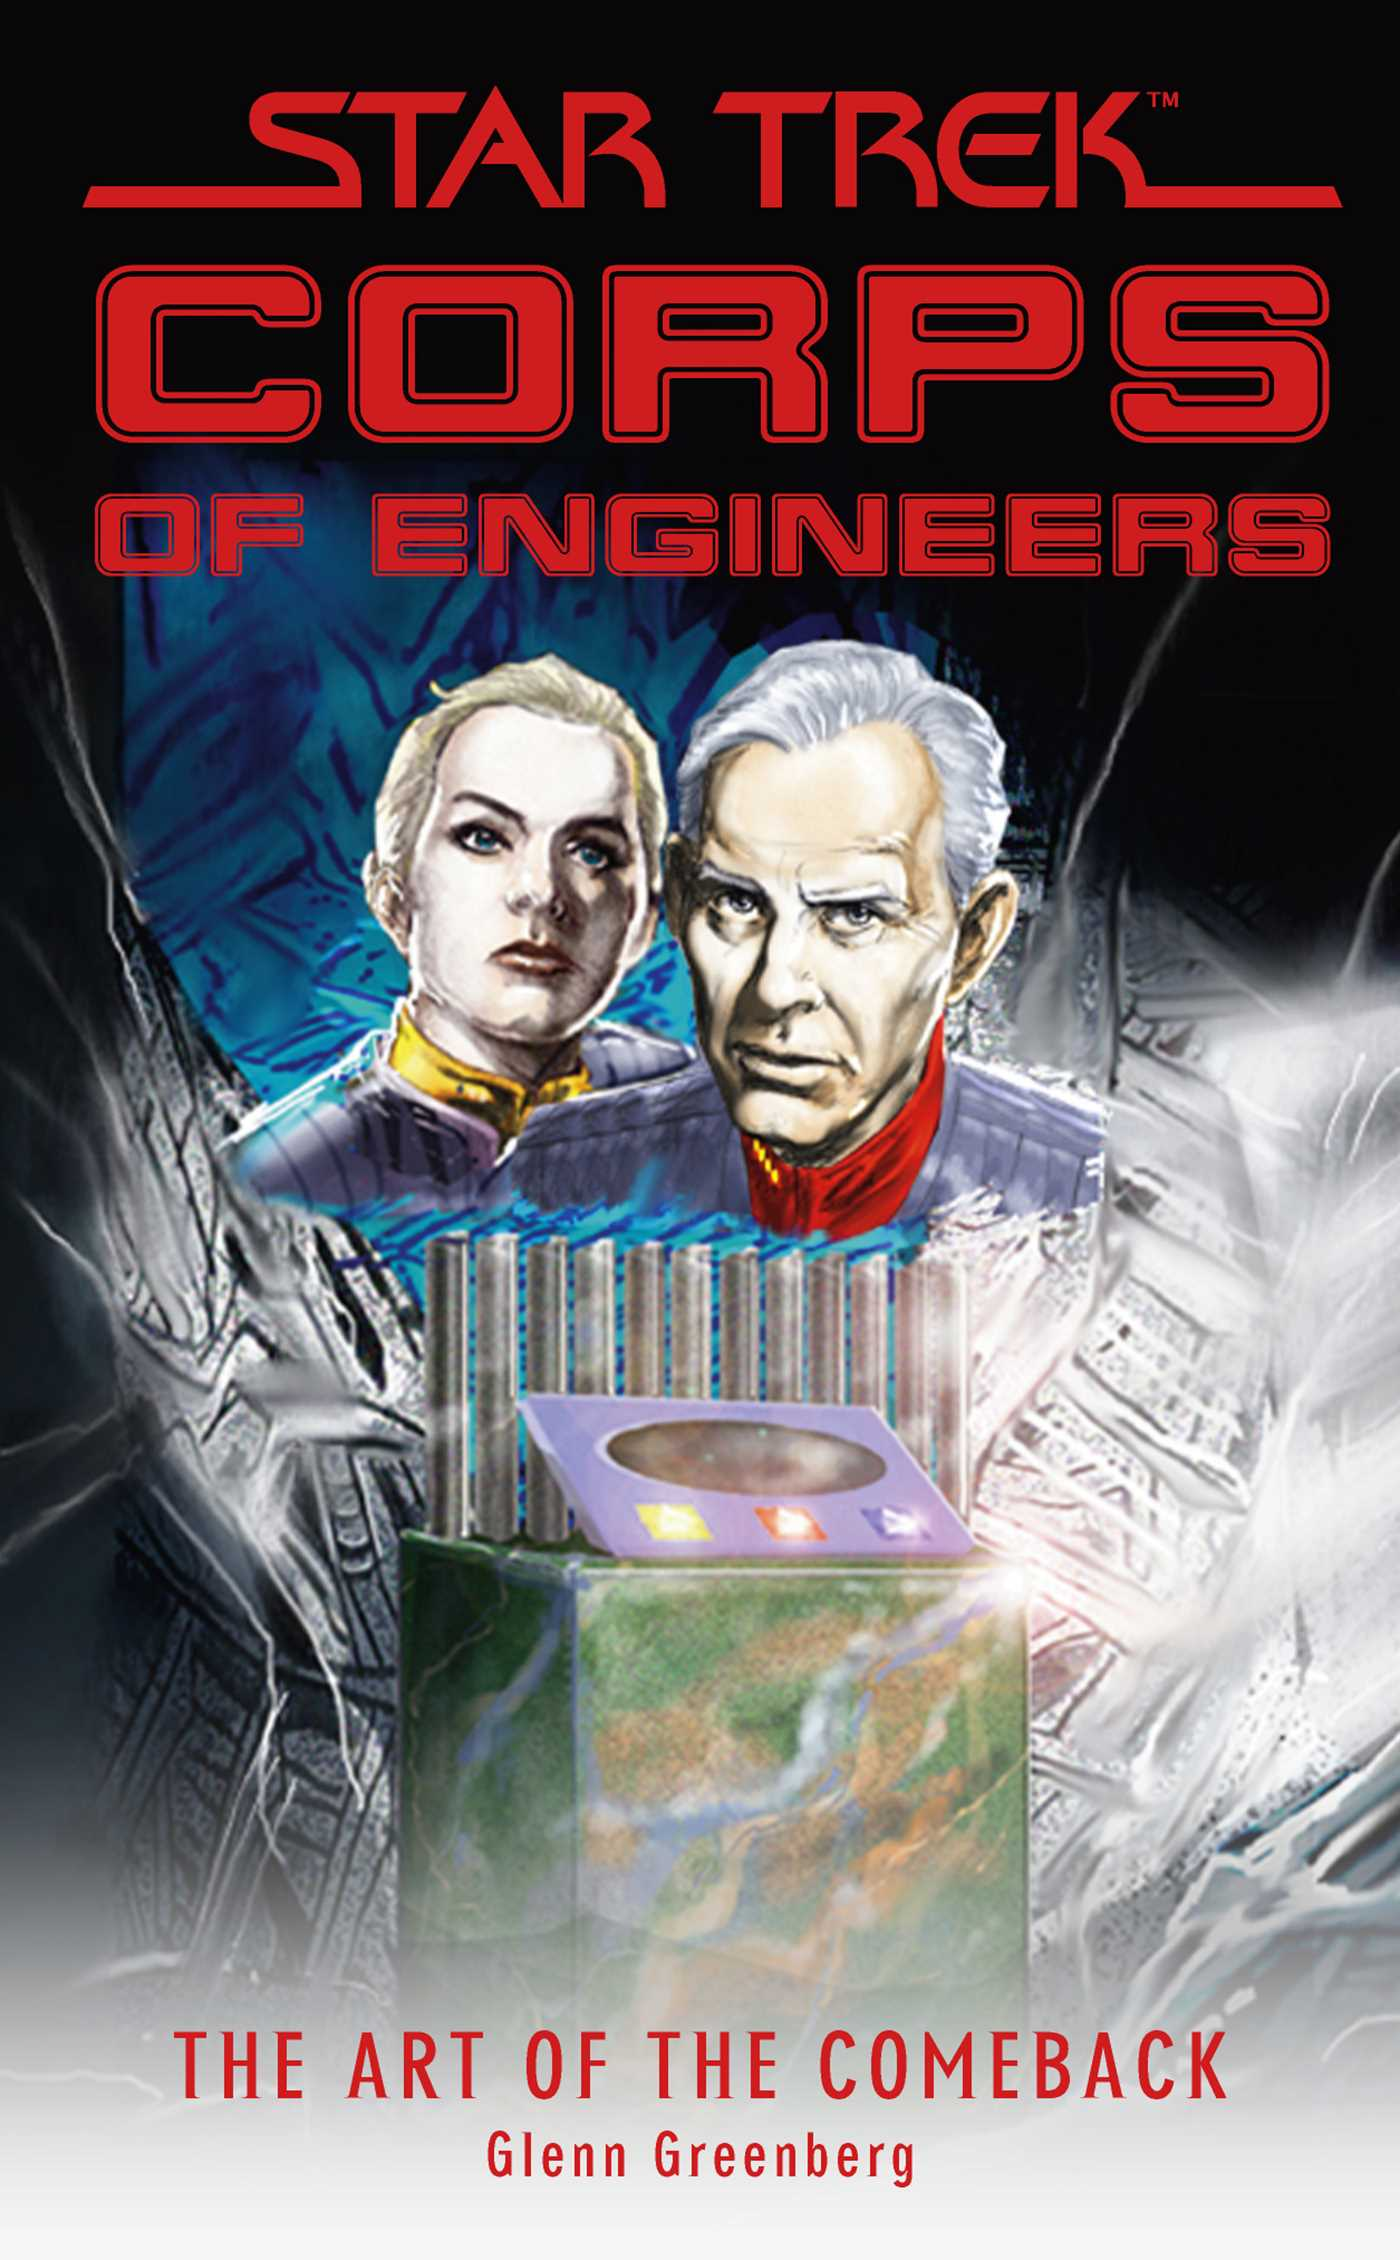 Star-trek-corps-of-engineers-the-art-of-the-comeback-9781416549789_hr